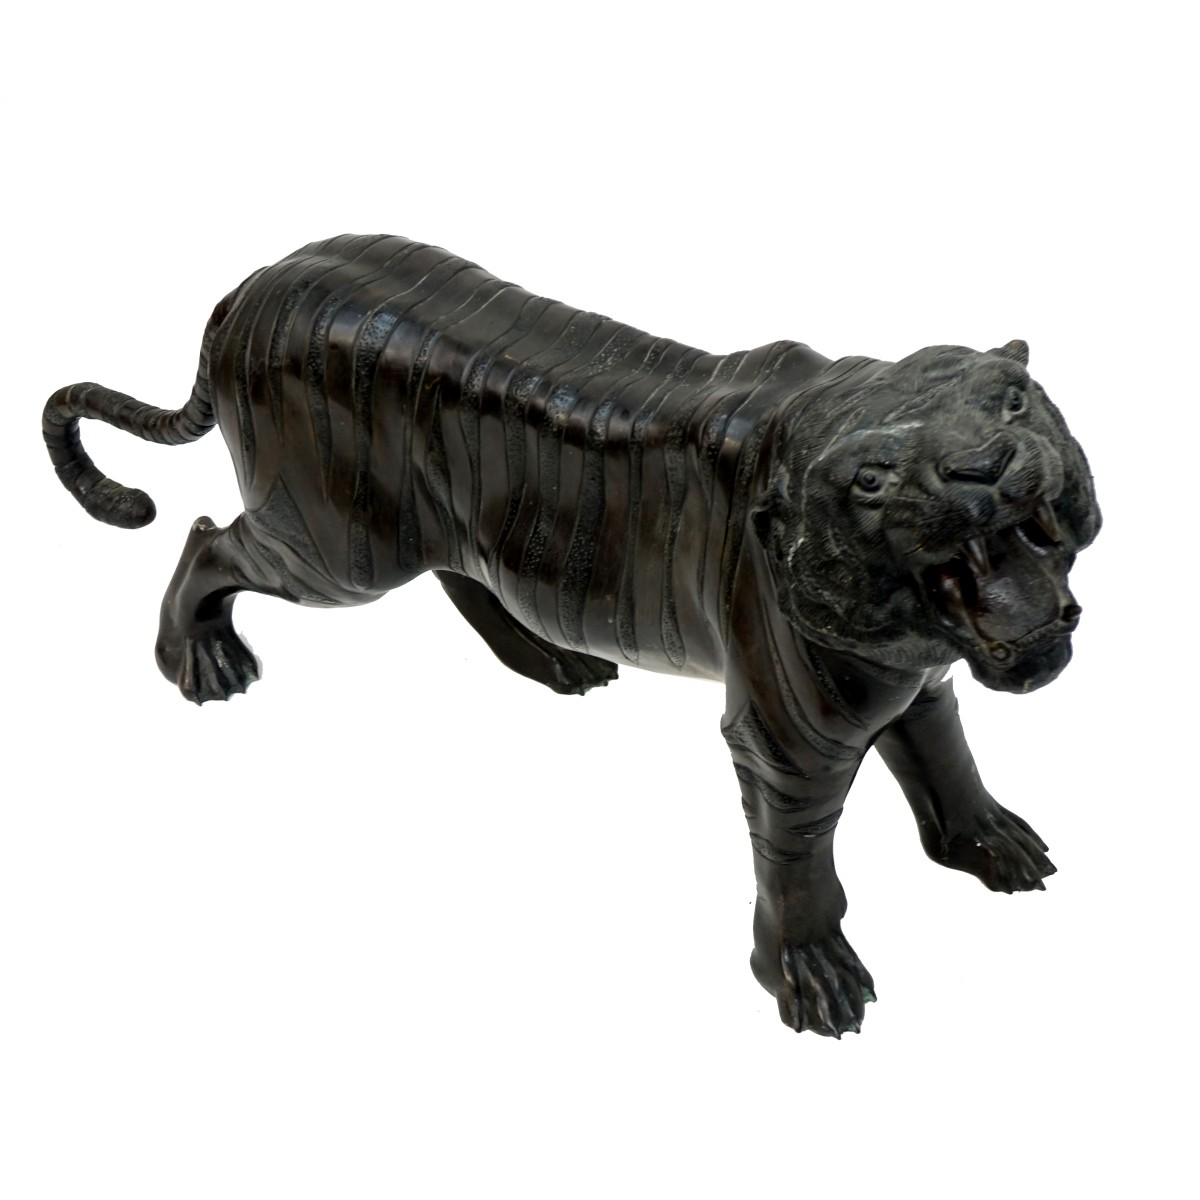 Life Size Japanese Bronze Tiger